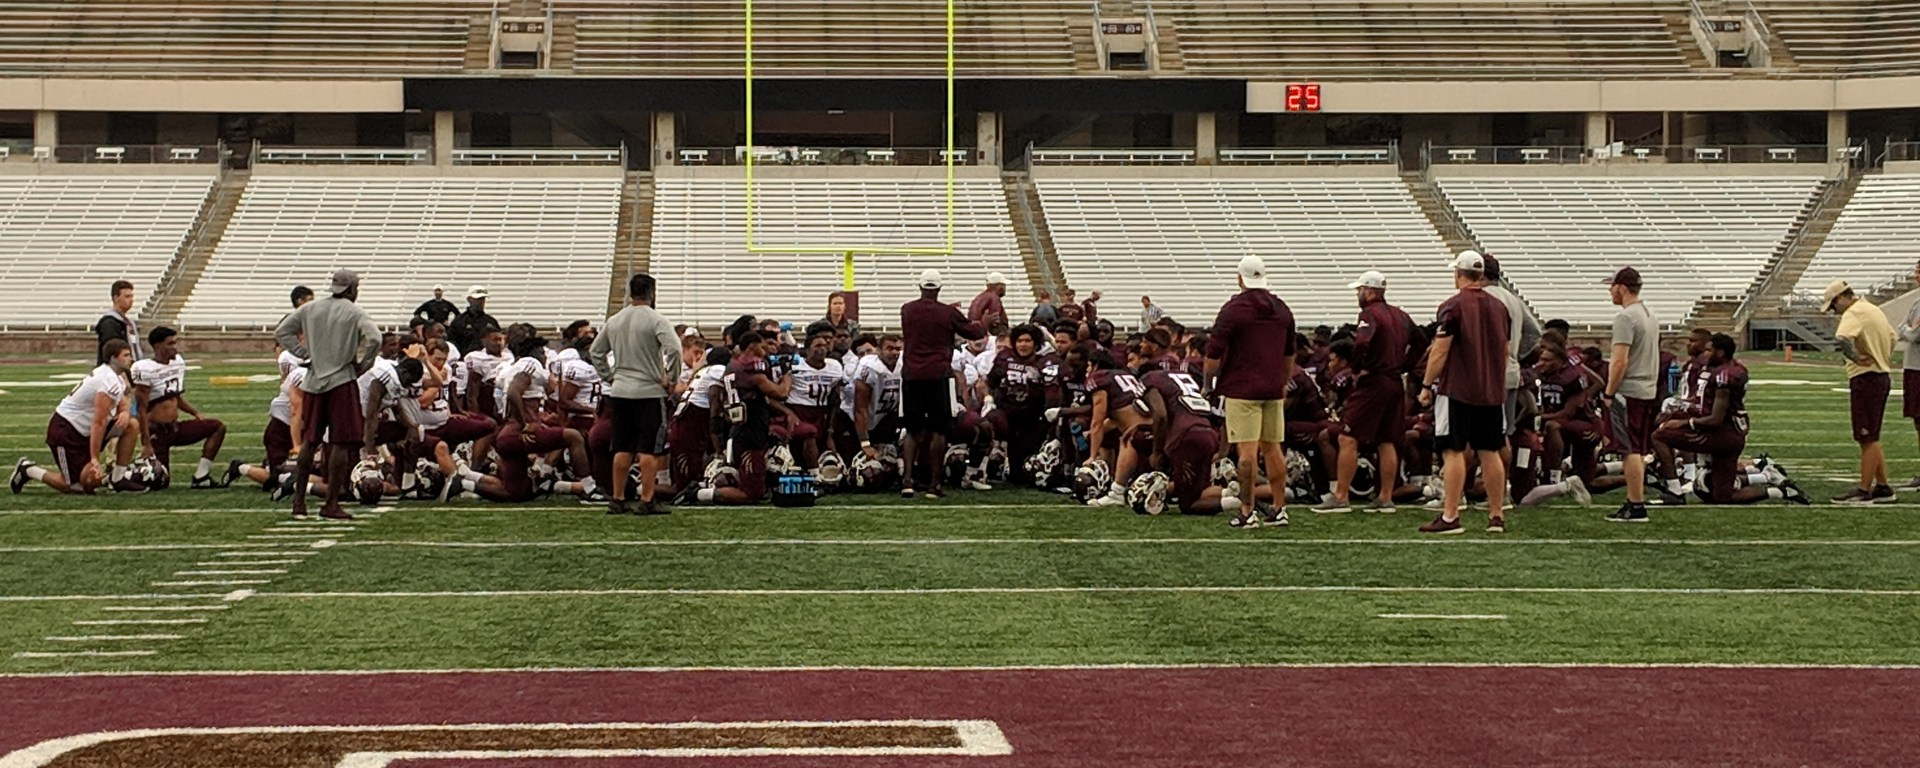 After warmups during a cloudy, September practice, the Texas State Bobcats gather at the 20-yard line of Bobcat Stadium as Coach Withers addresses them.